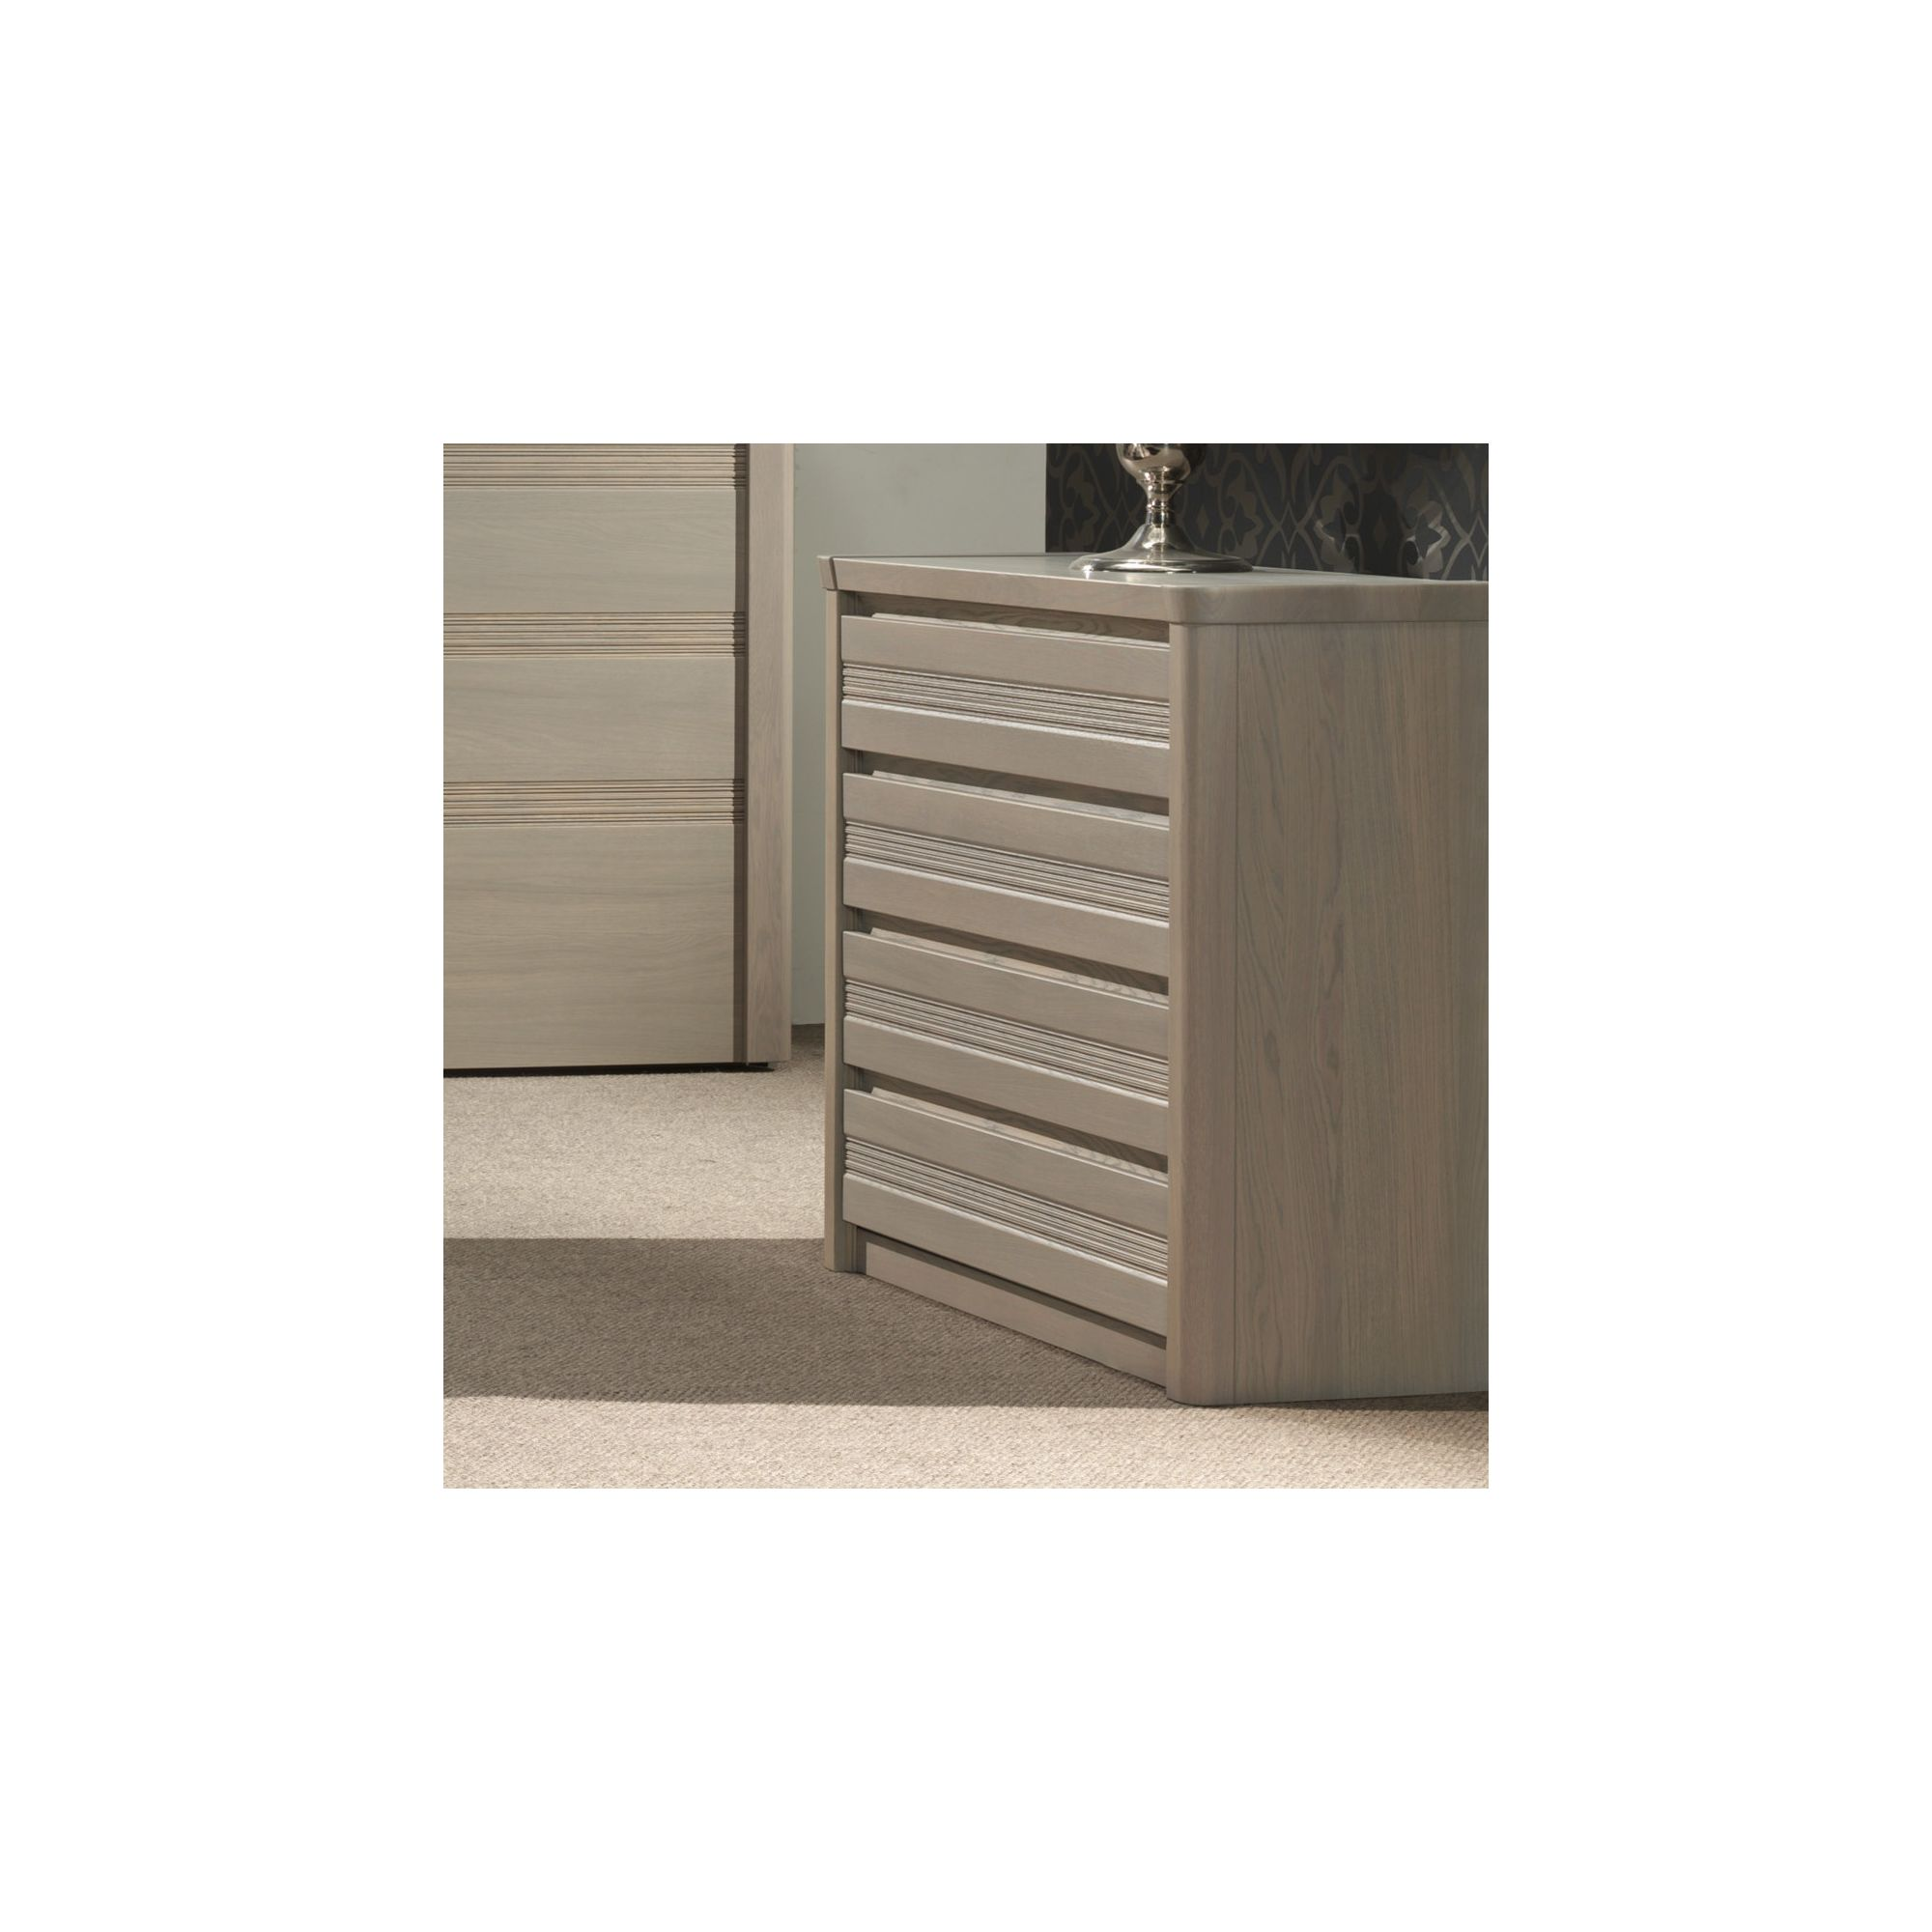 Sleepline Mundo 4 Drawers Chest - White Mat Lacquered at Tesco Direct